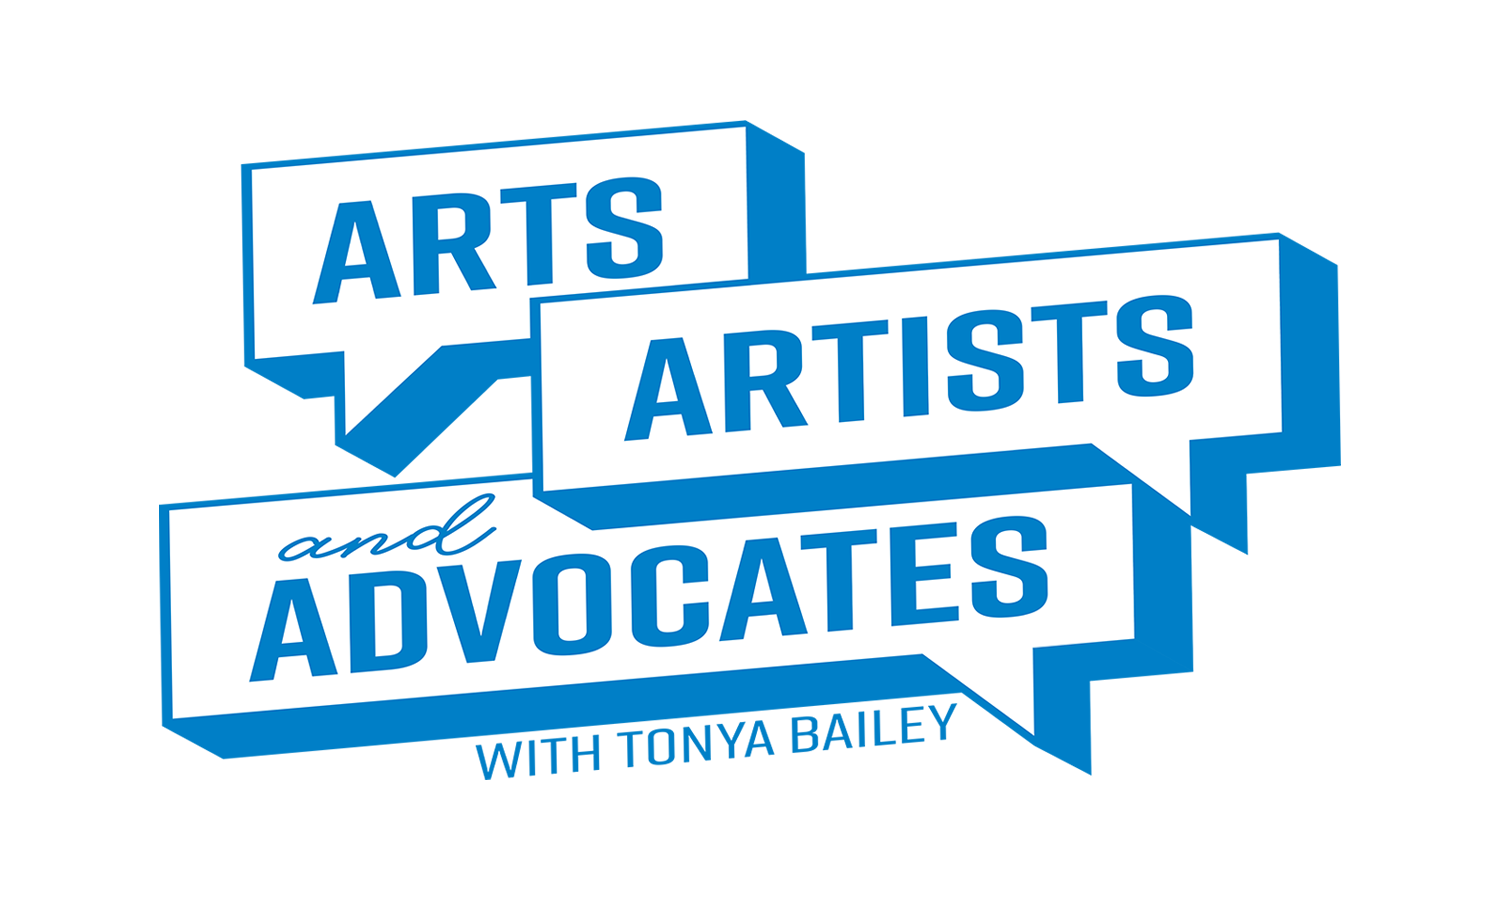 Arts, Artists and Advocates with Tonya Bailey graphic